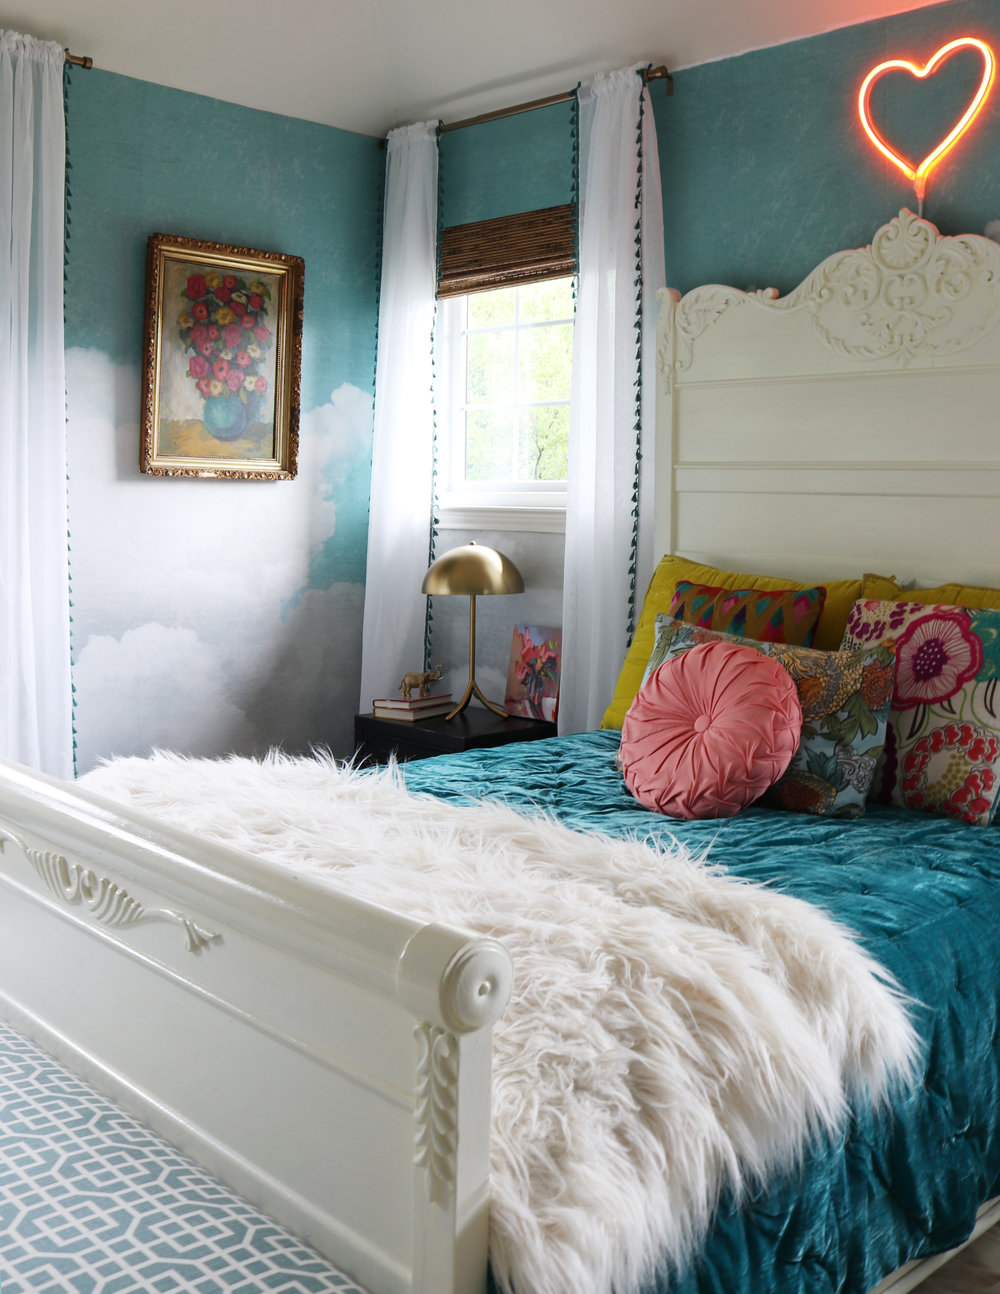 Tween bedroom with cloud wall mural.jpg